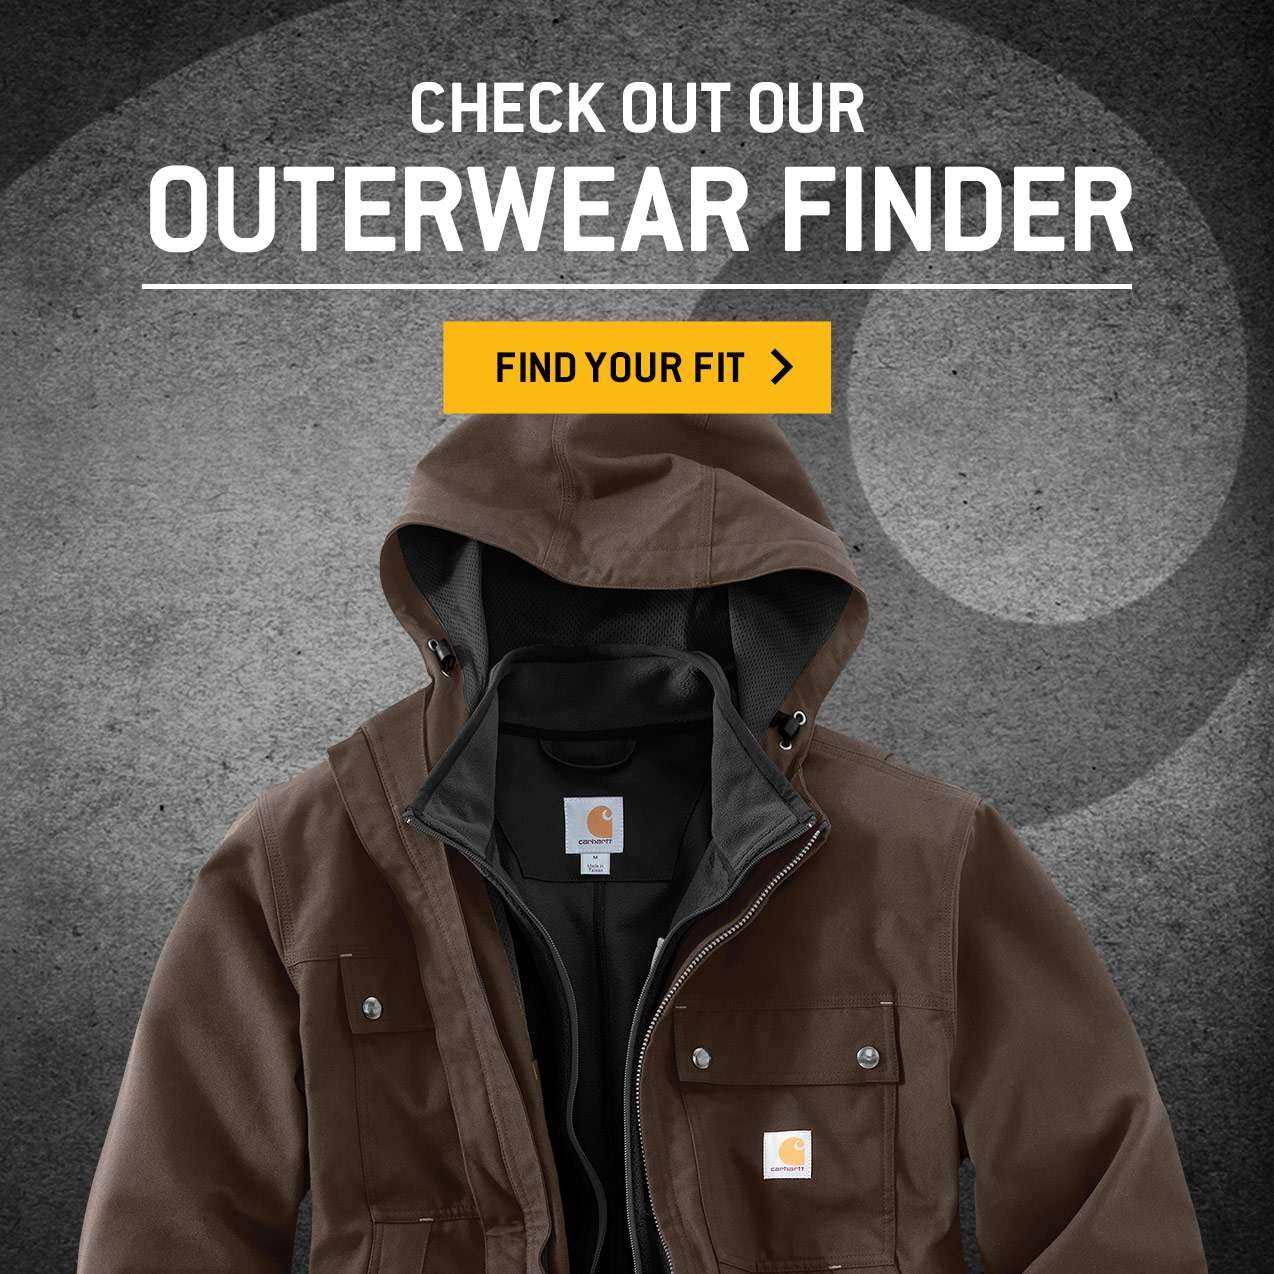 outerwear finder